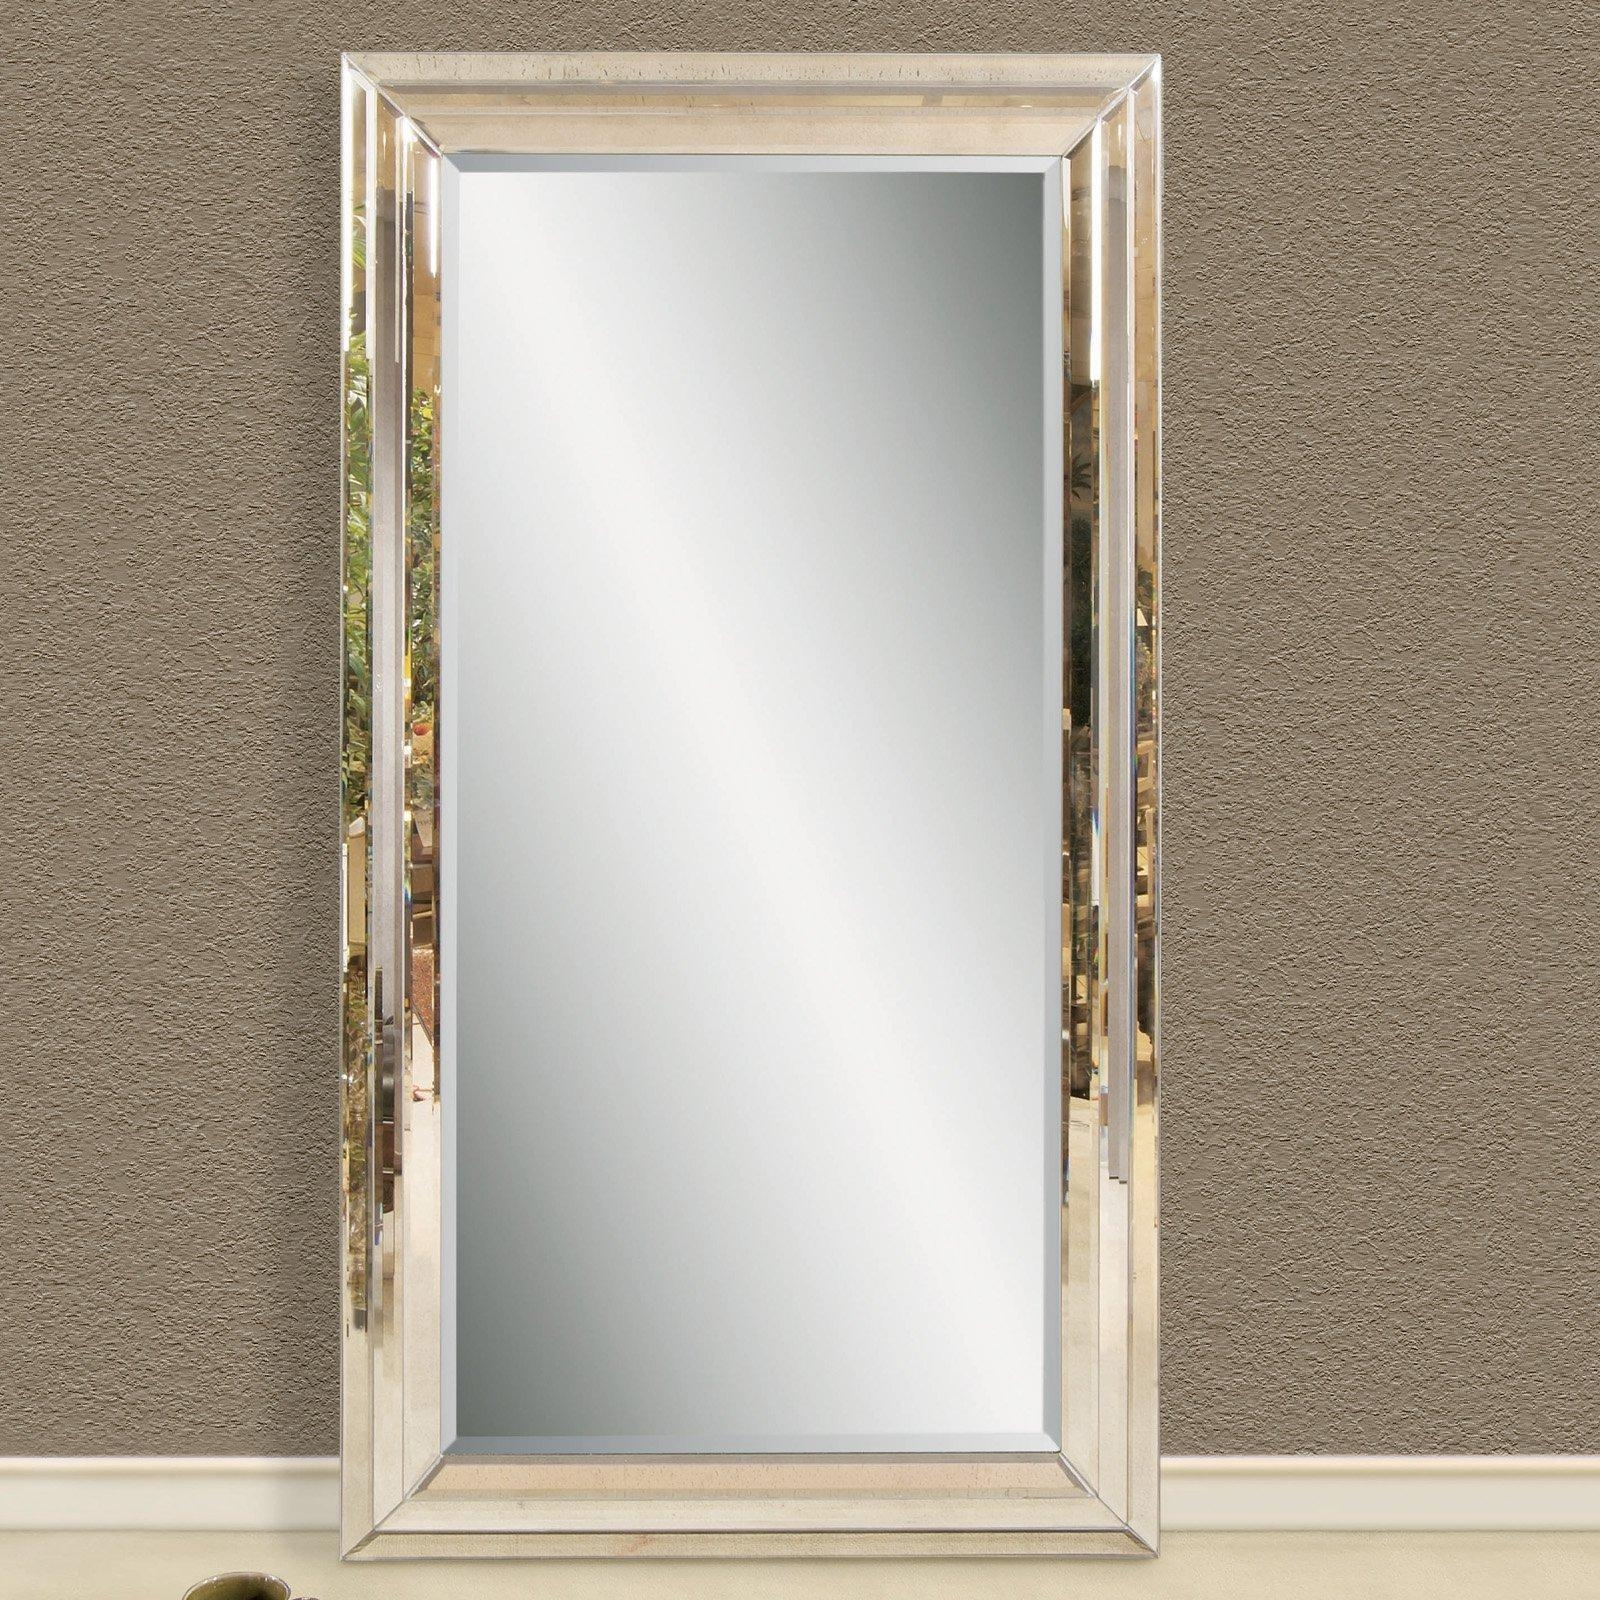 Extra Large Floor Mirror (Image 6 of 20)